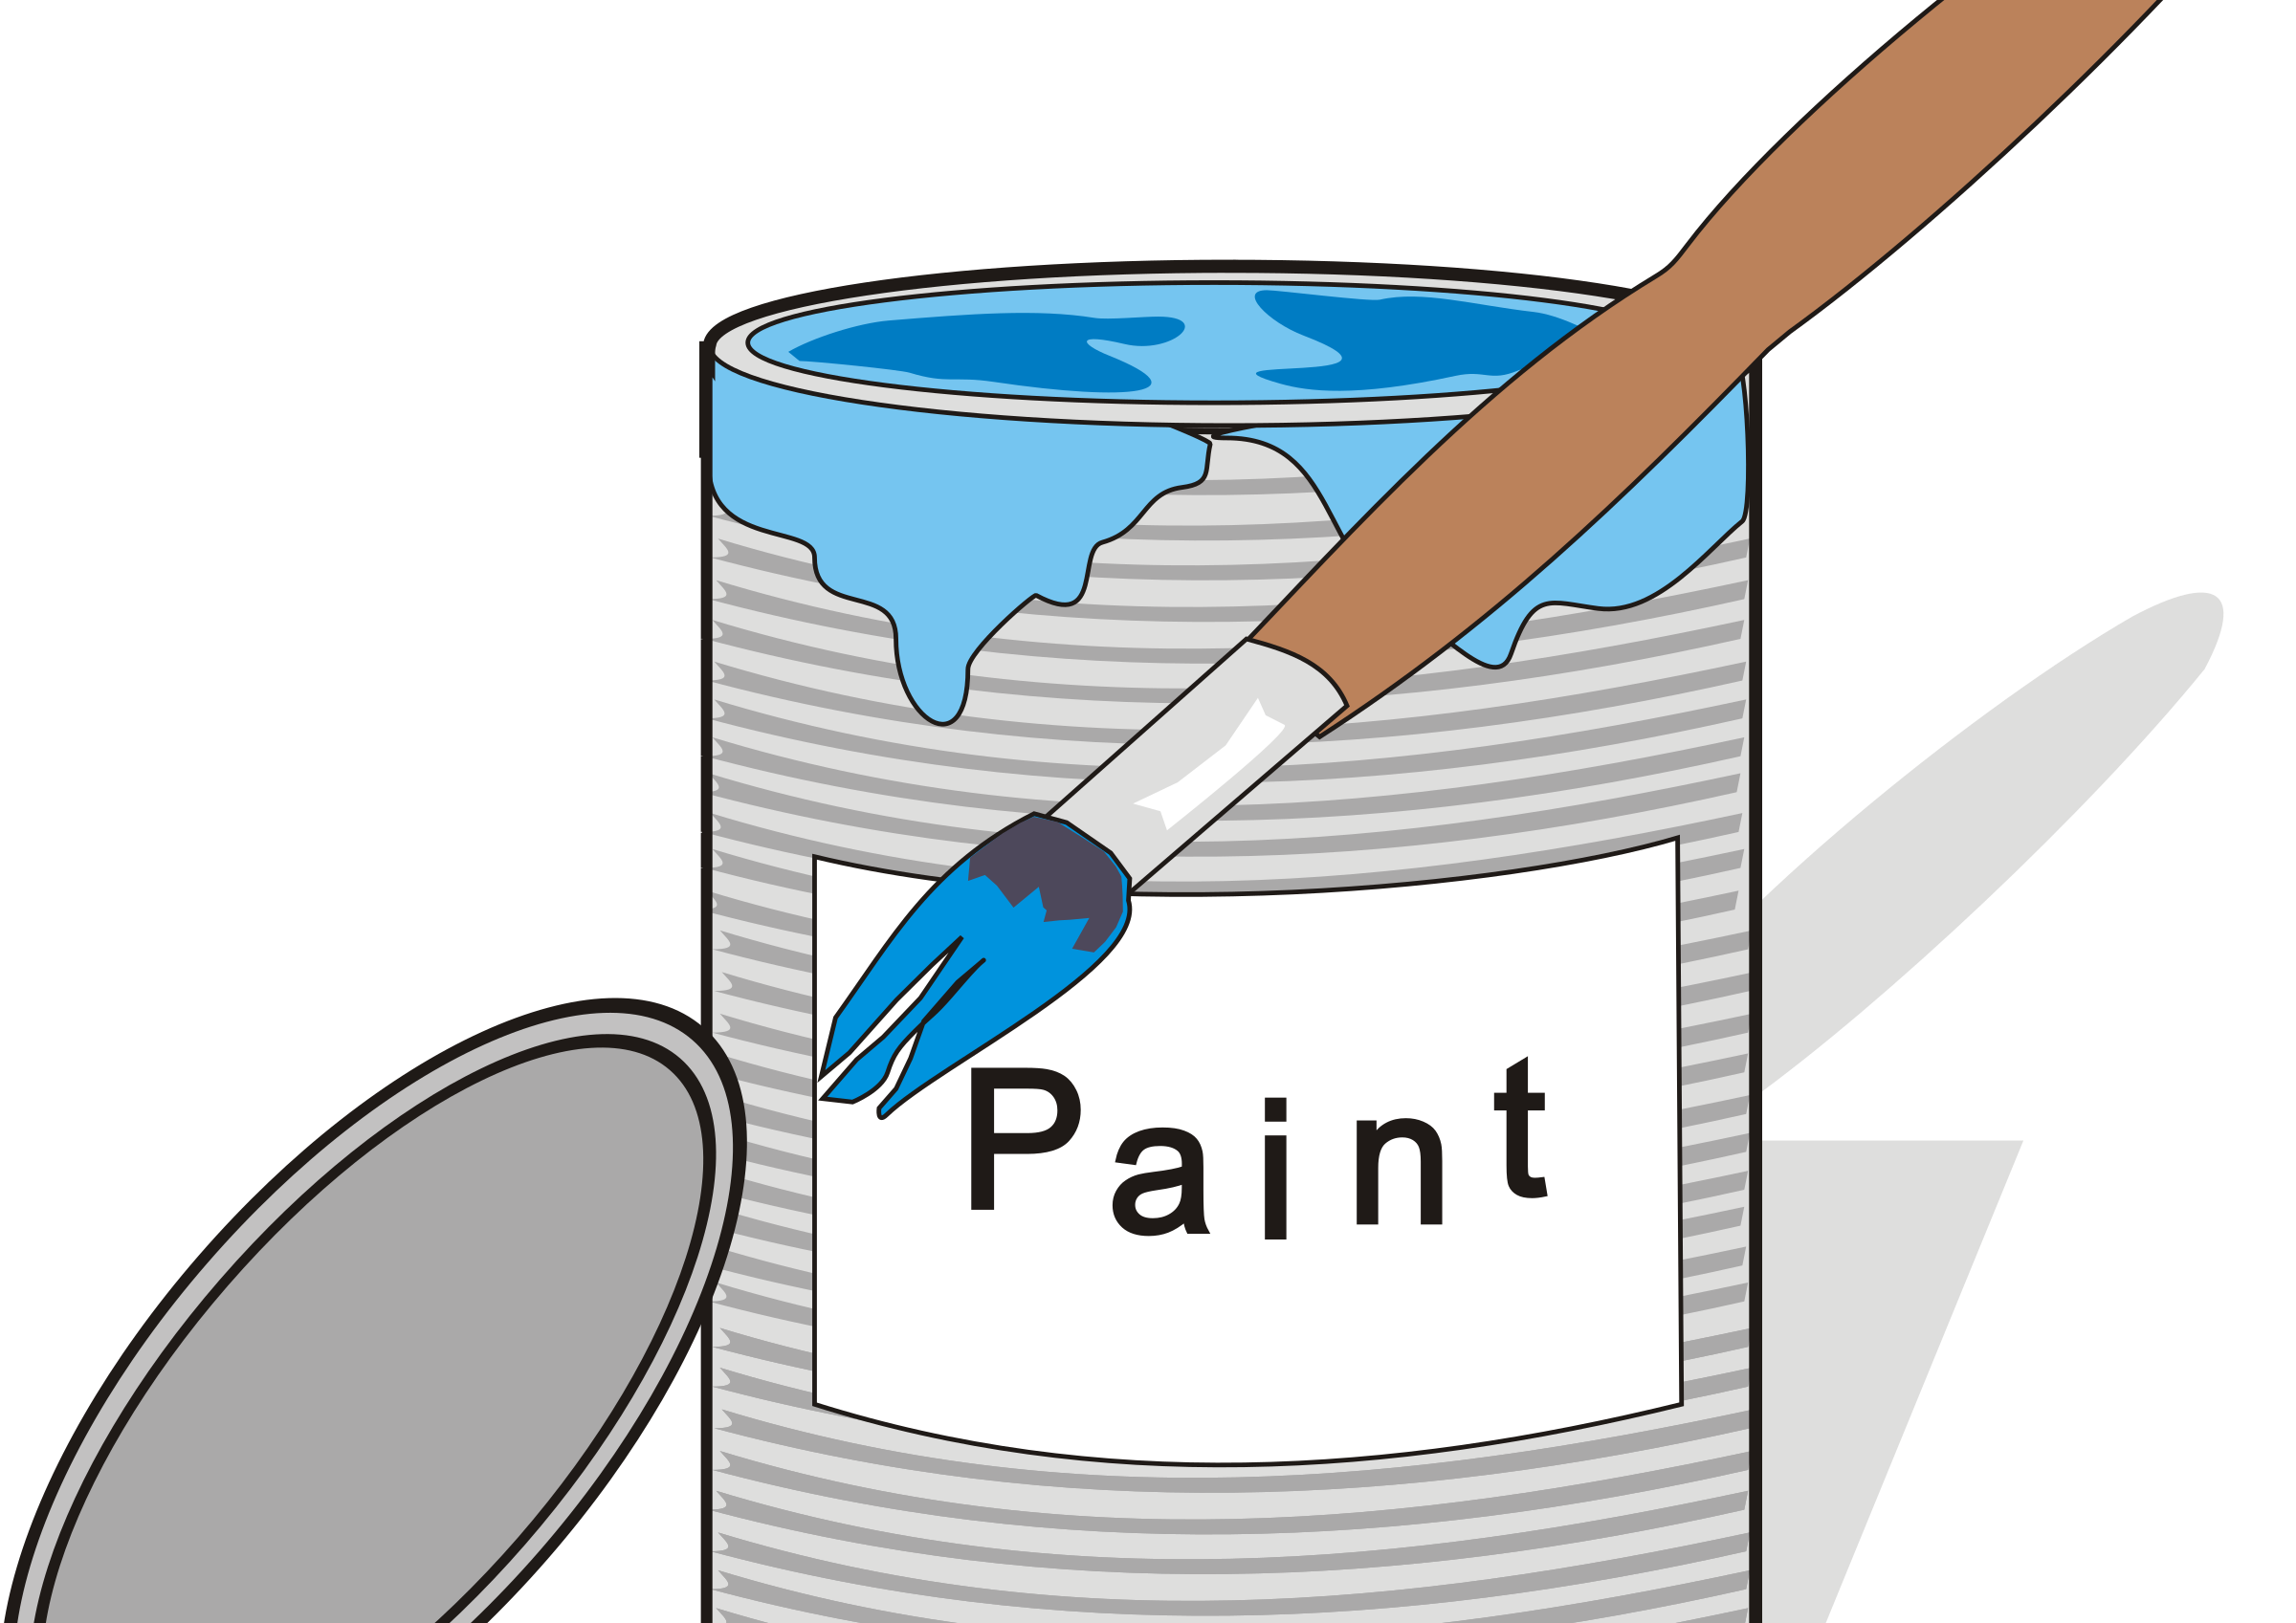 Paint tin can and brush 1 by aidiagre